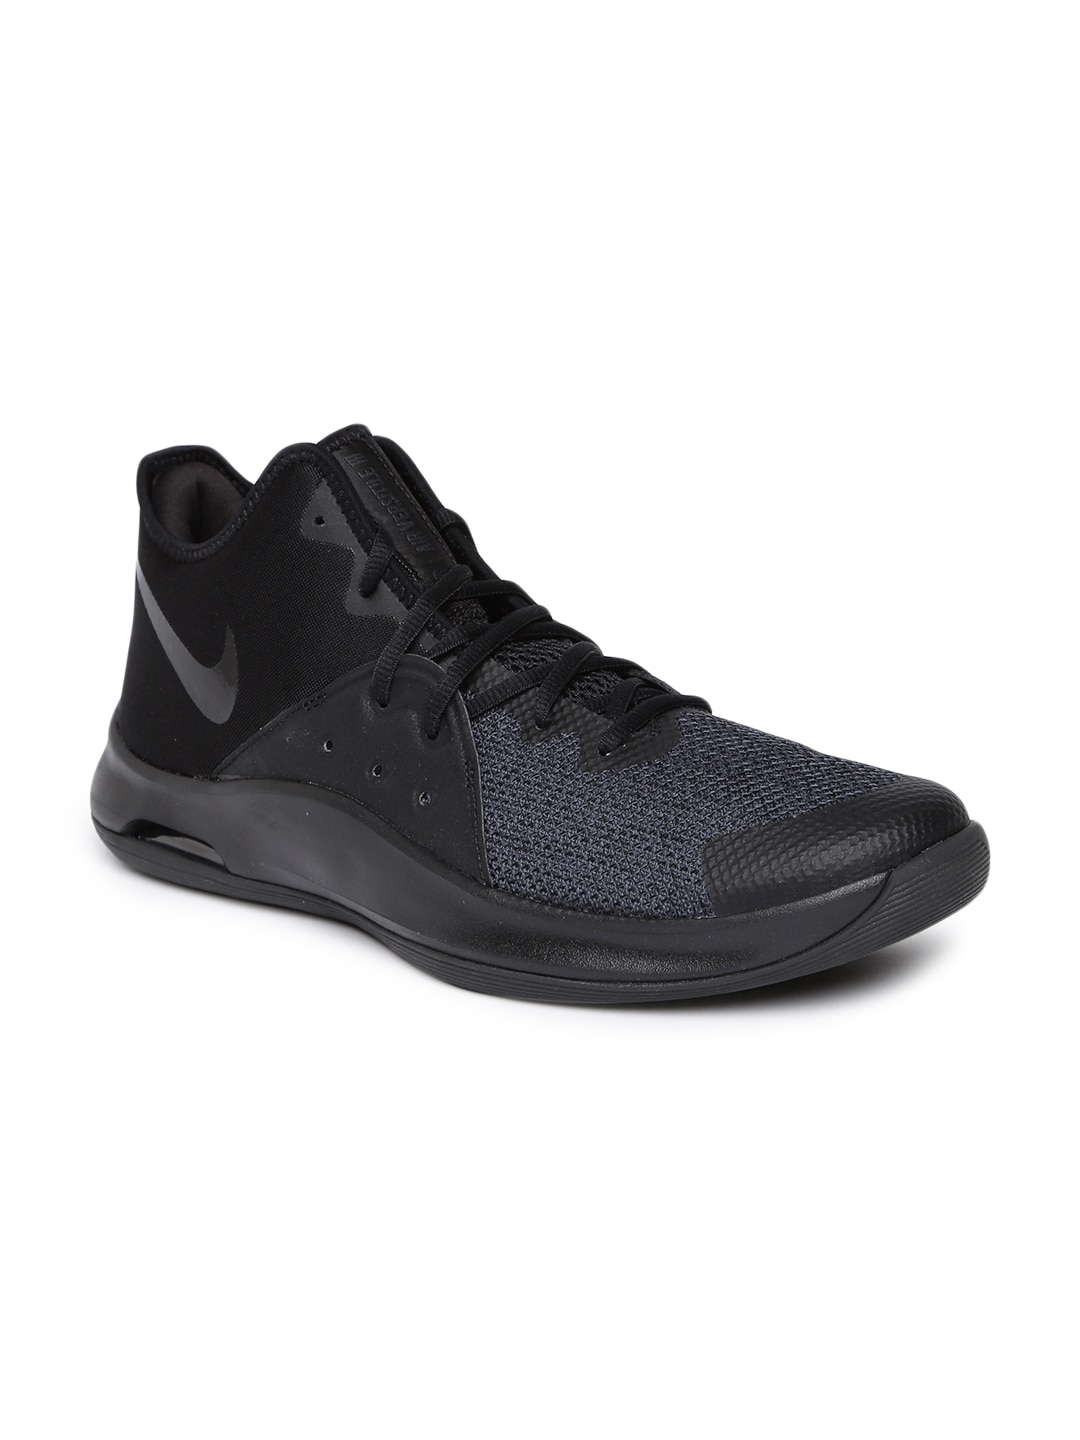 Women s Nike Shoes - Buy Nike Shoes for Women Online in India 0362badfb